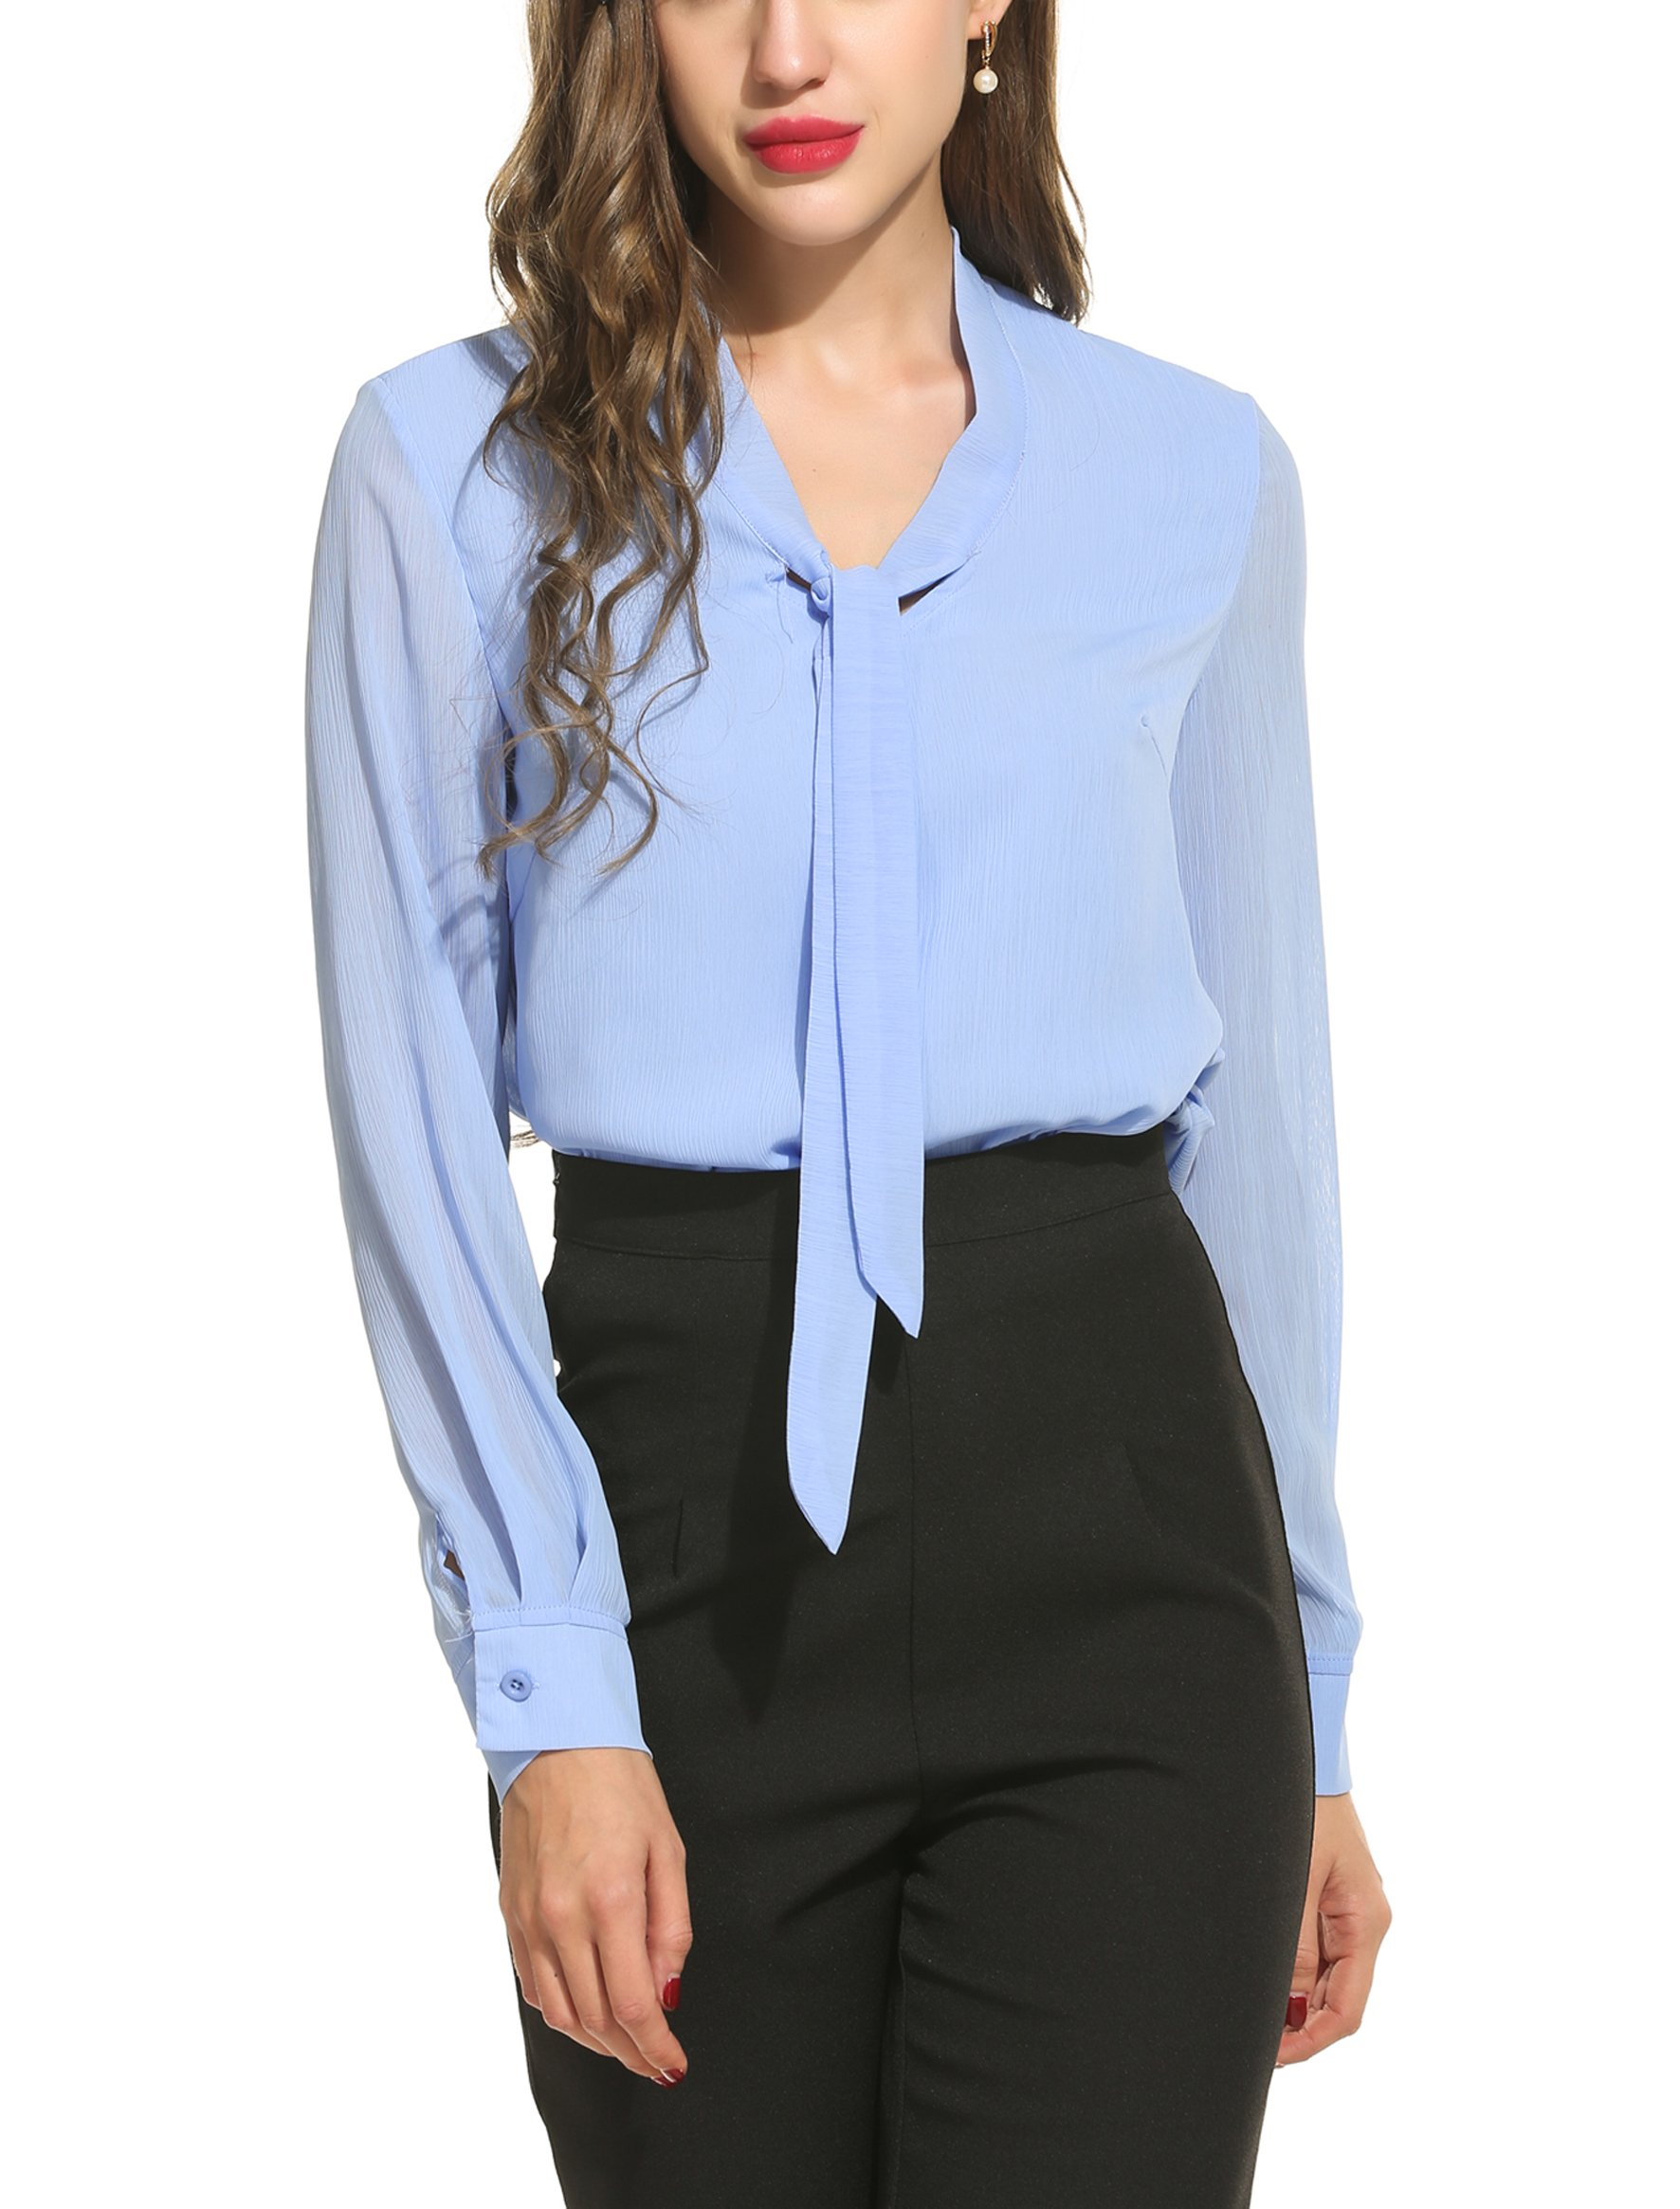 Womens Bow Tie Neck Long/Short Sleeve Casual Office Work Chiffon Blouse Shirts Tops- Buy Online in Kuwait at Desertcart. ProductId : 38057170.